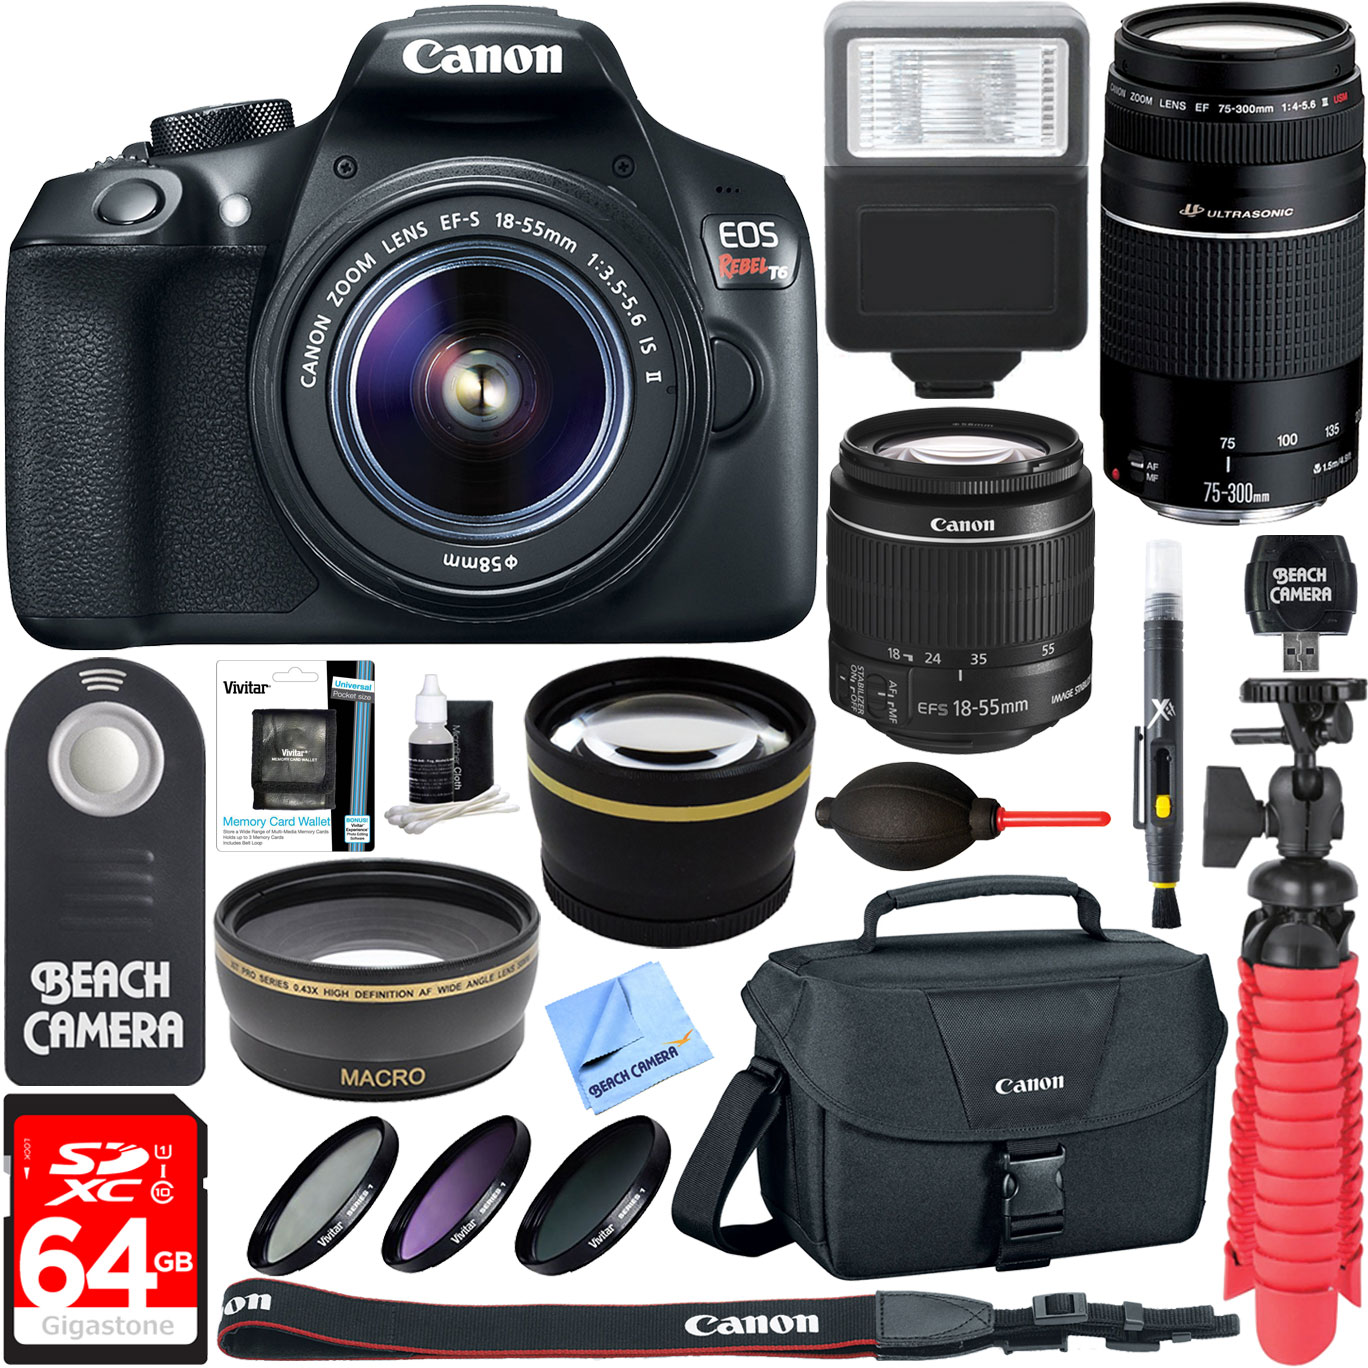 Canon T6 EOS Rebel DSLR Camera w/ EF-S 18-55mm & 75-300mm IS II Lens Kit + Accessory Bundle 64GB SDXC Memory + SLR Photo Bag + Wide Angle Lens + 2x Telephoto Lens + Flash + Remote + Tripod & More